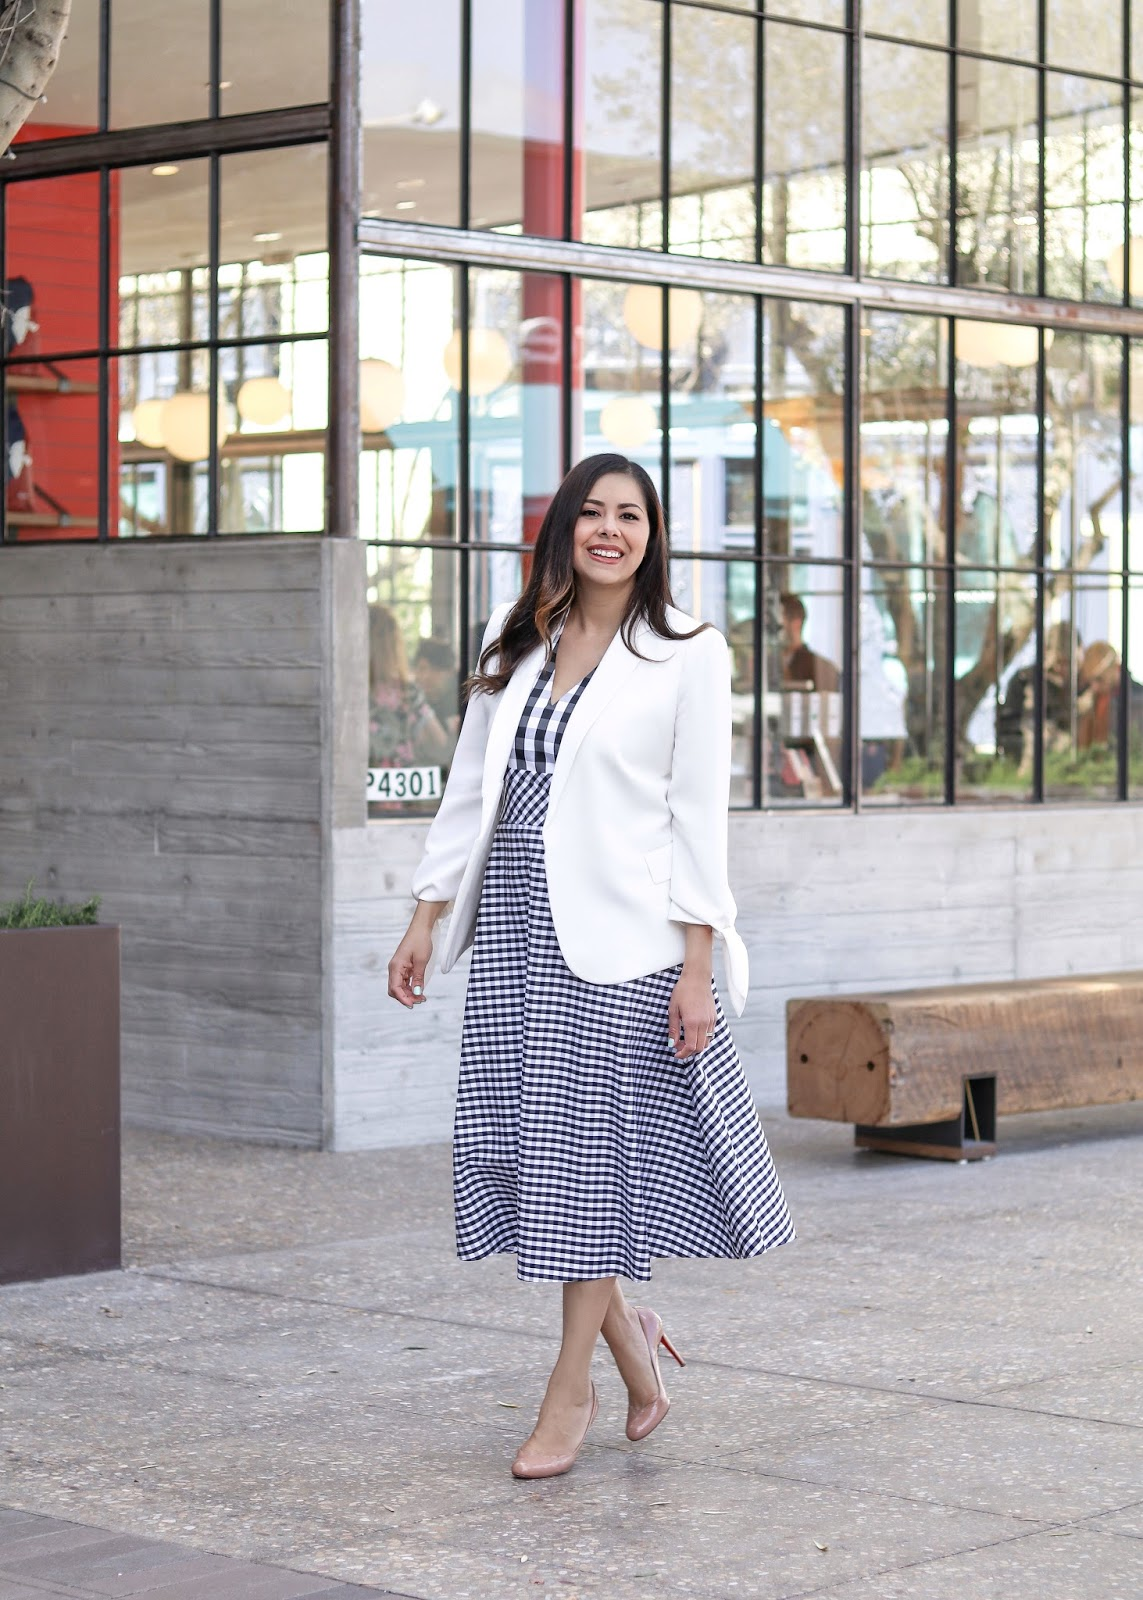 Gingham dress, white blazer with gingham dress